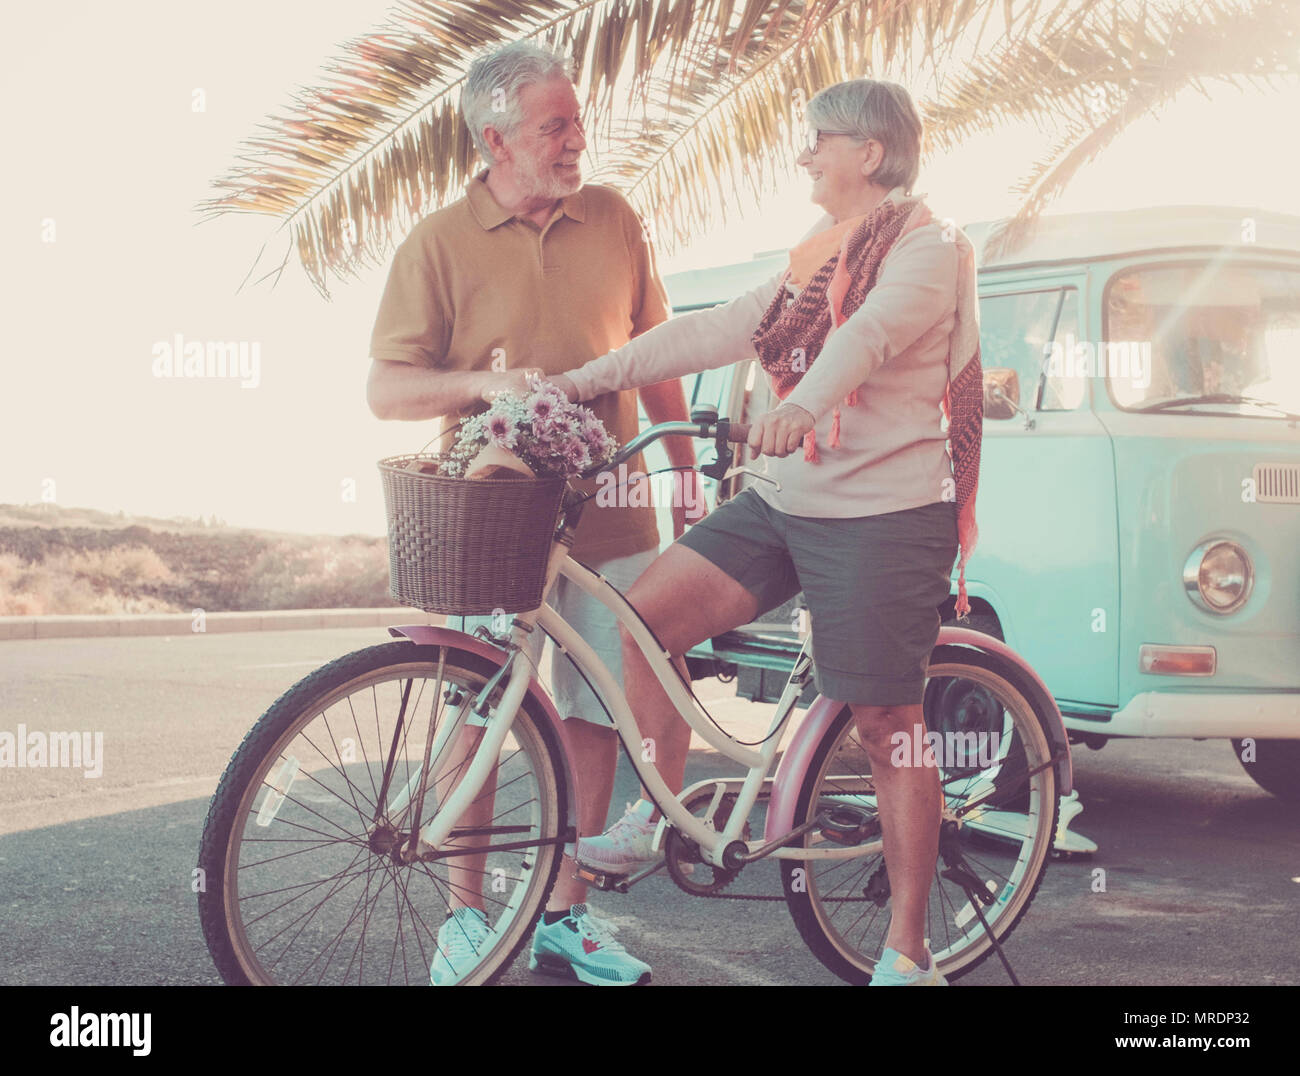 man and woman caucasian mature have fun outside with old bike and vintage van. vacation and happy retired concept. backlight from sun for nice models  - Stock Image